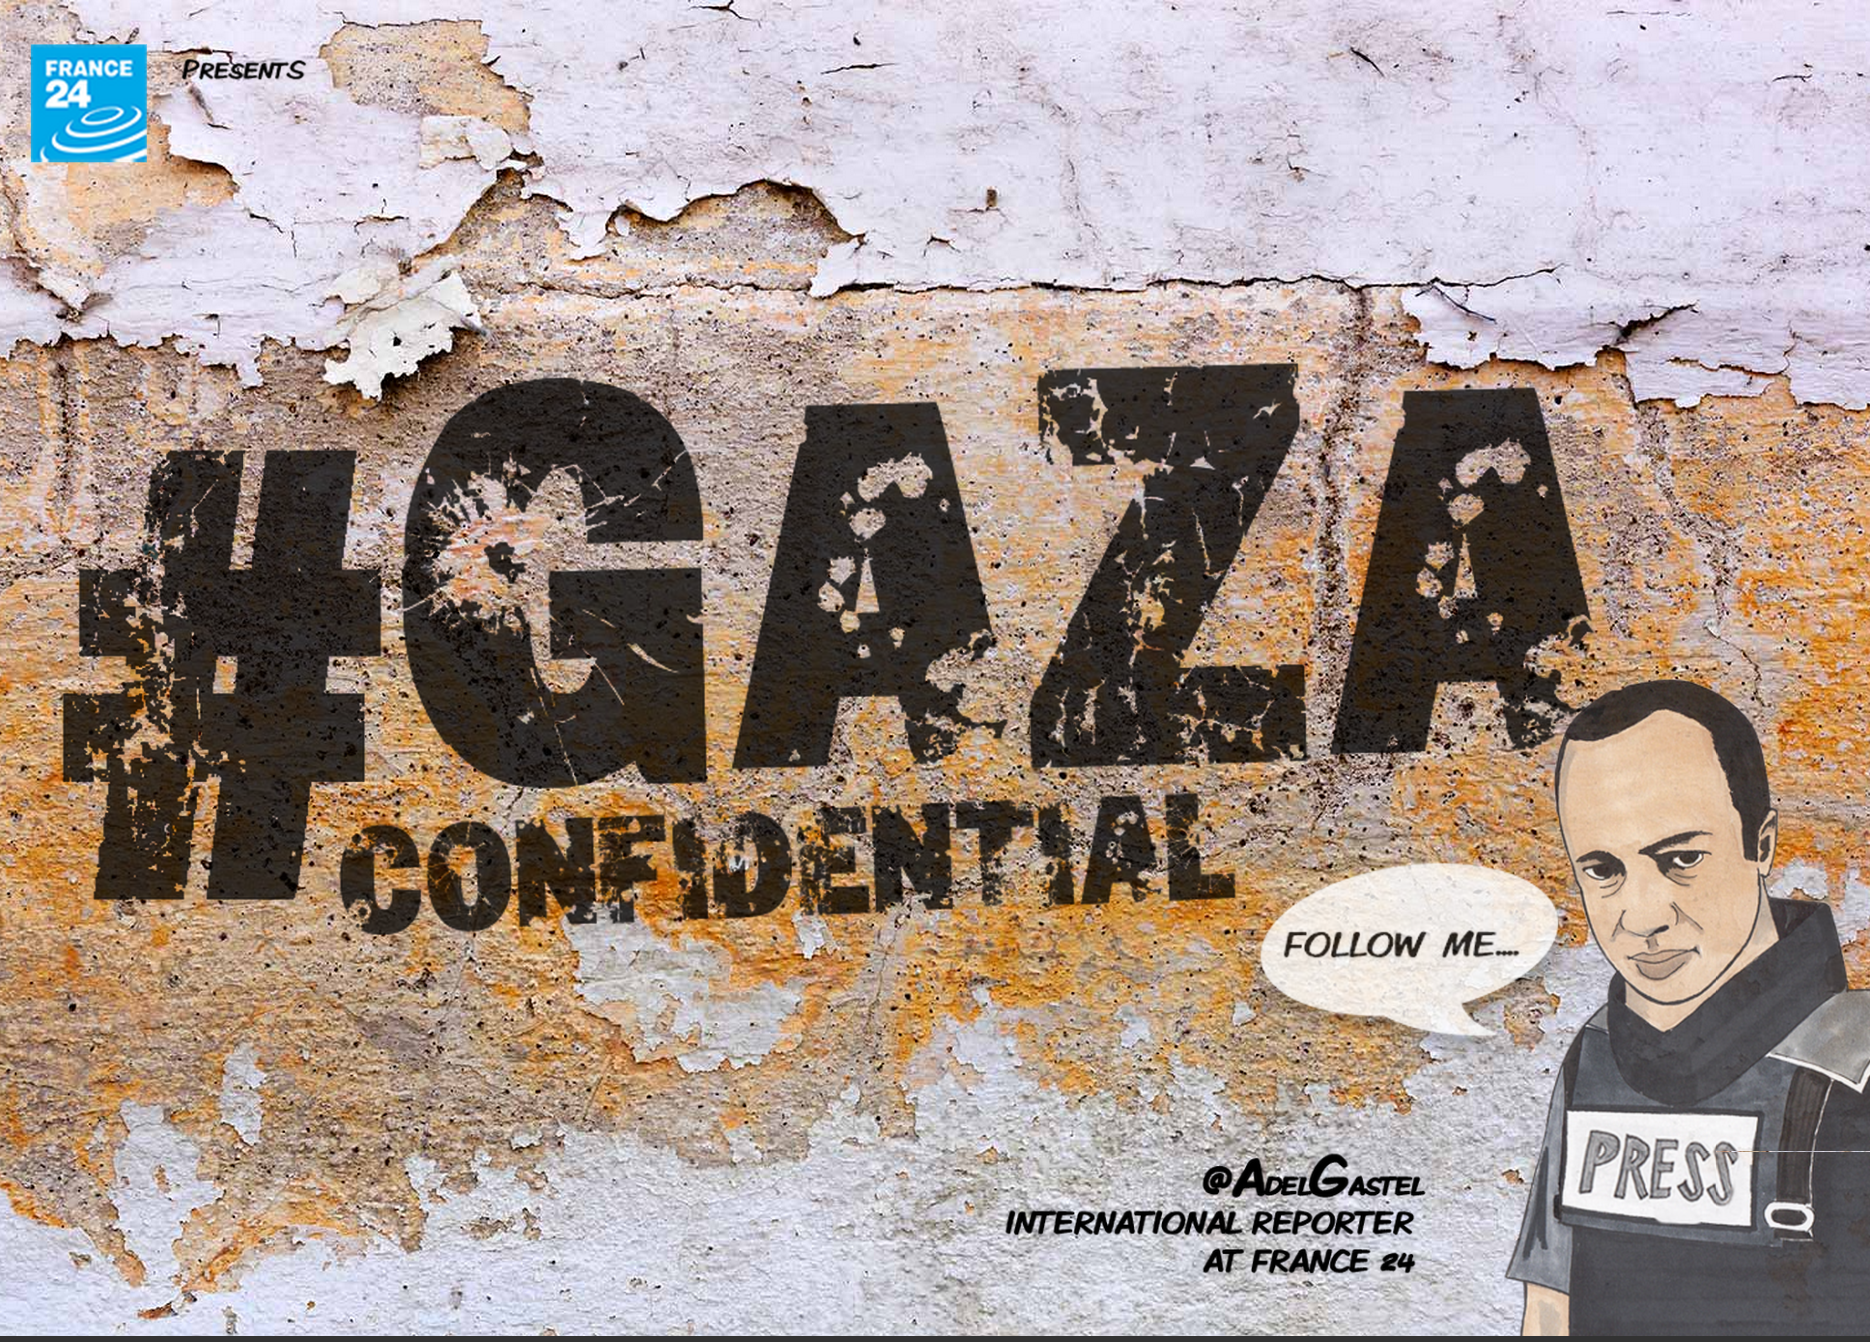 Gaza_Confidential_France24_Home